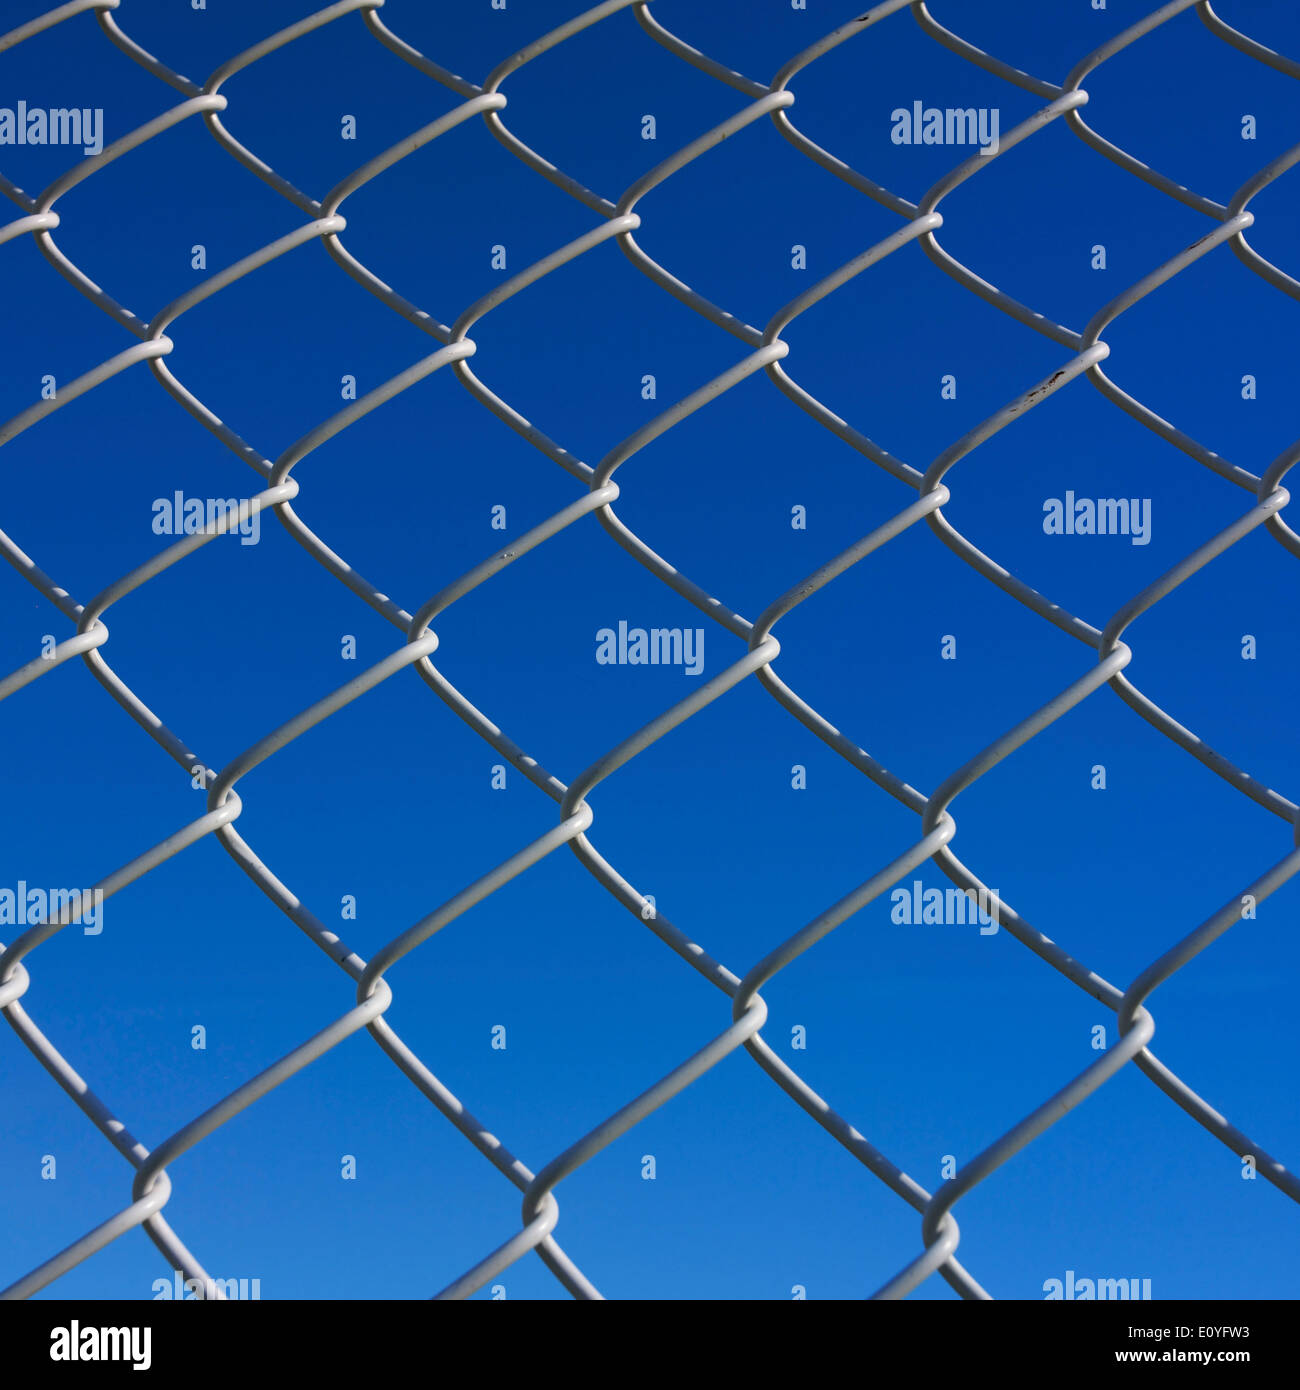 Wire mesh fence, wire netting on a fence, blue sky, background image - Stock Image